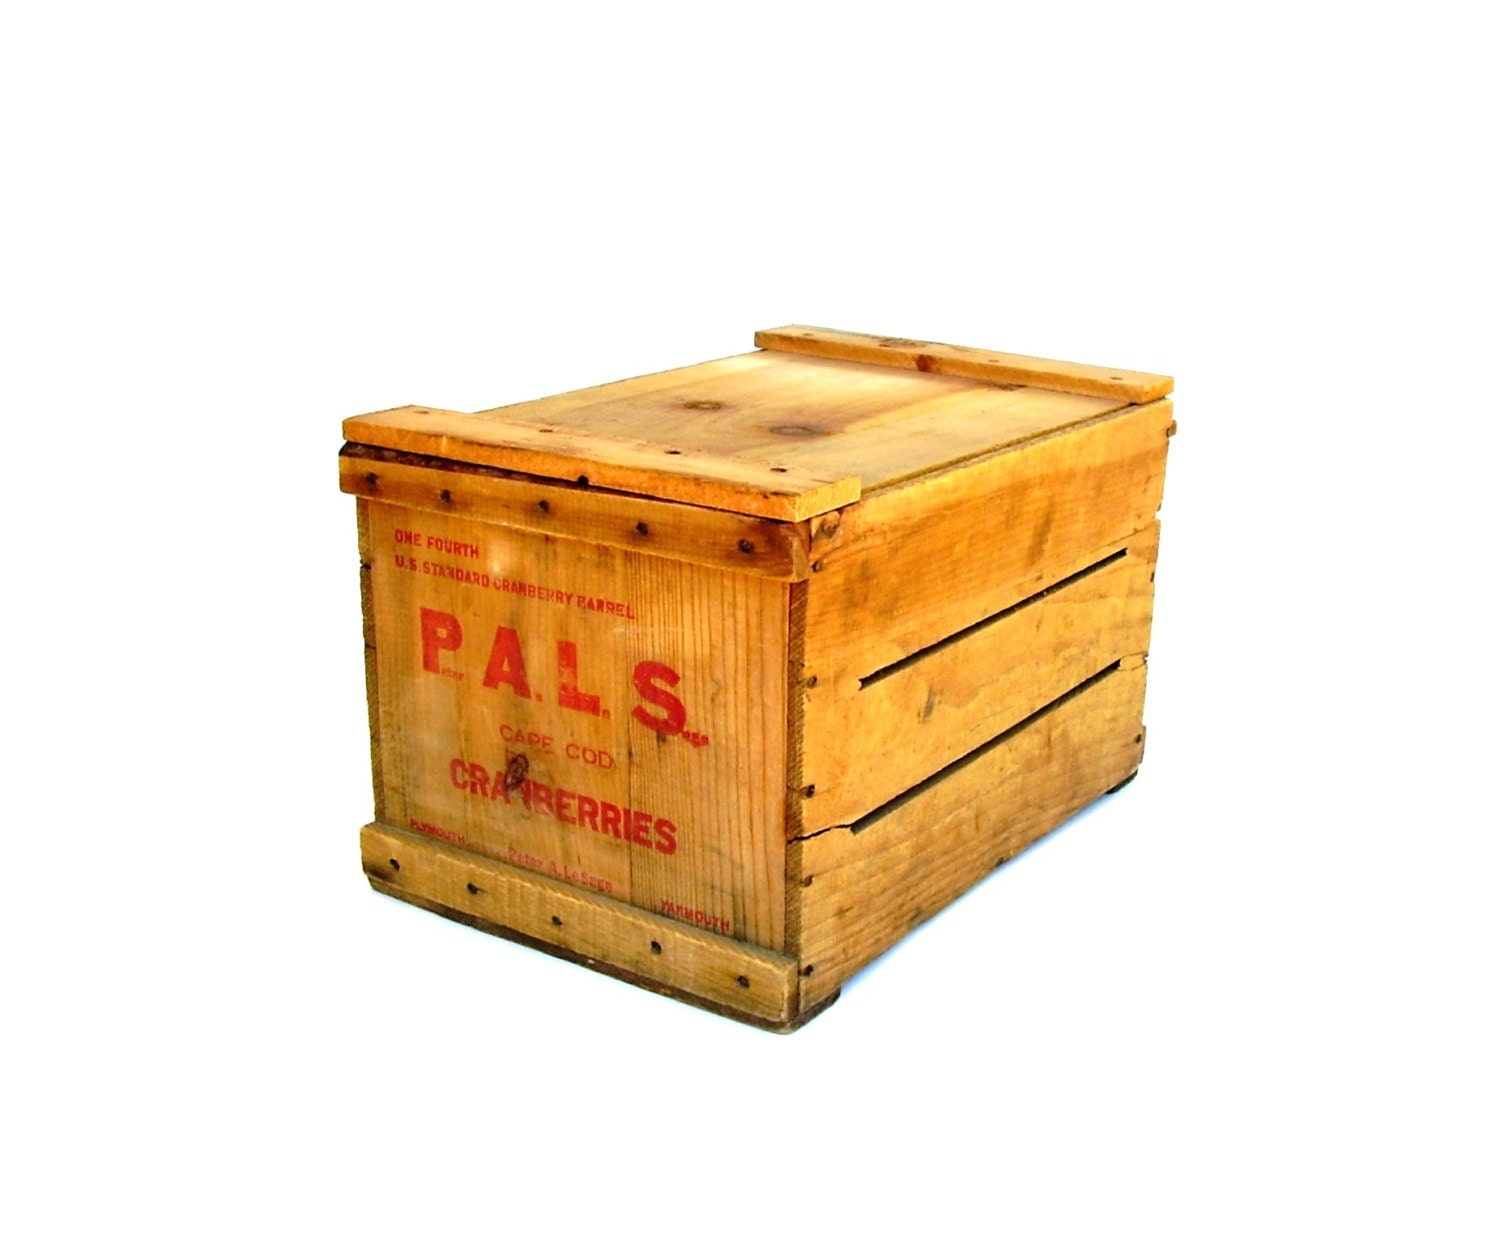 Antique Cape Cod Cranberry Crate Wood Box With Lid Red Stencil